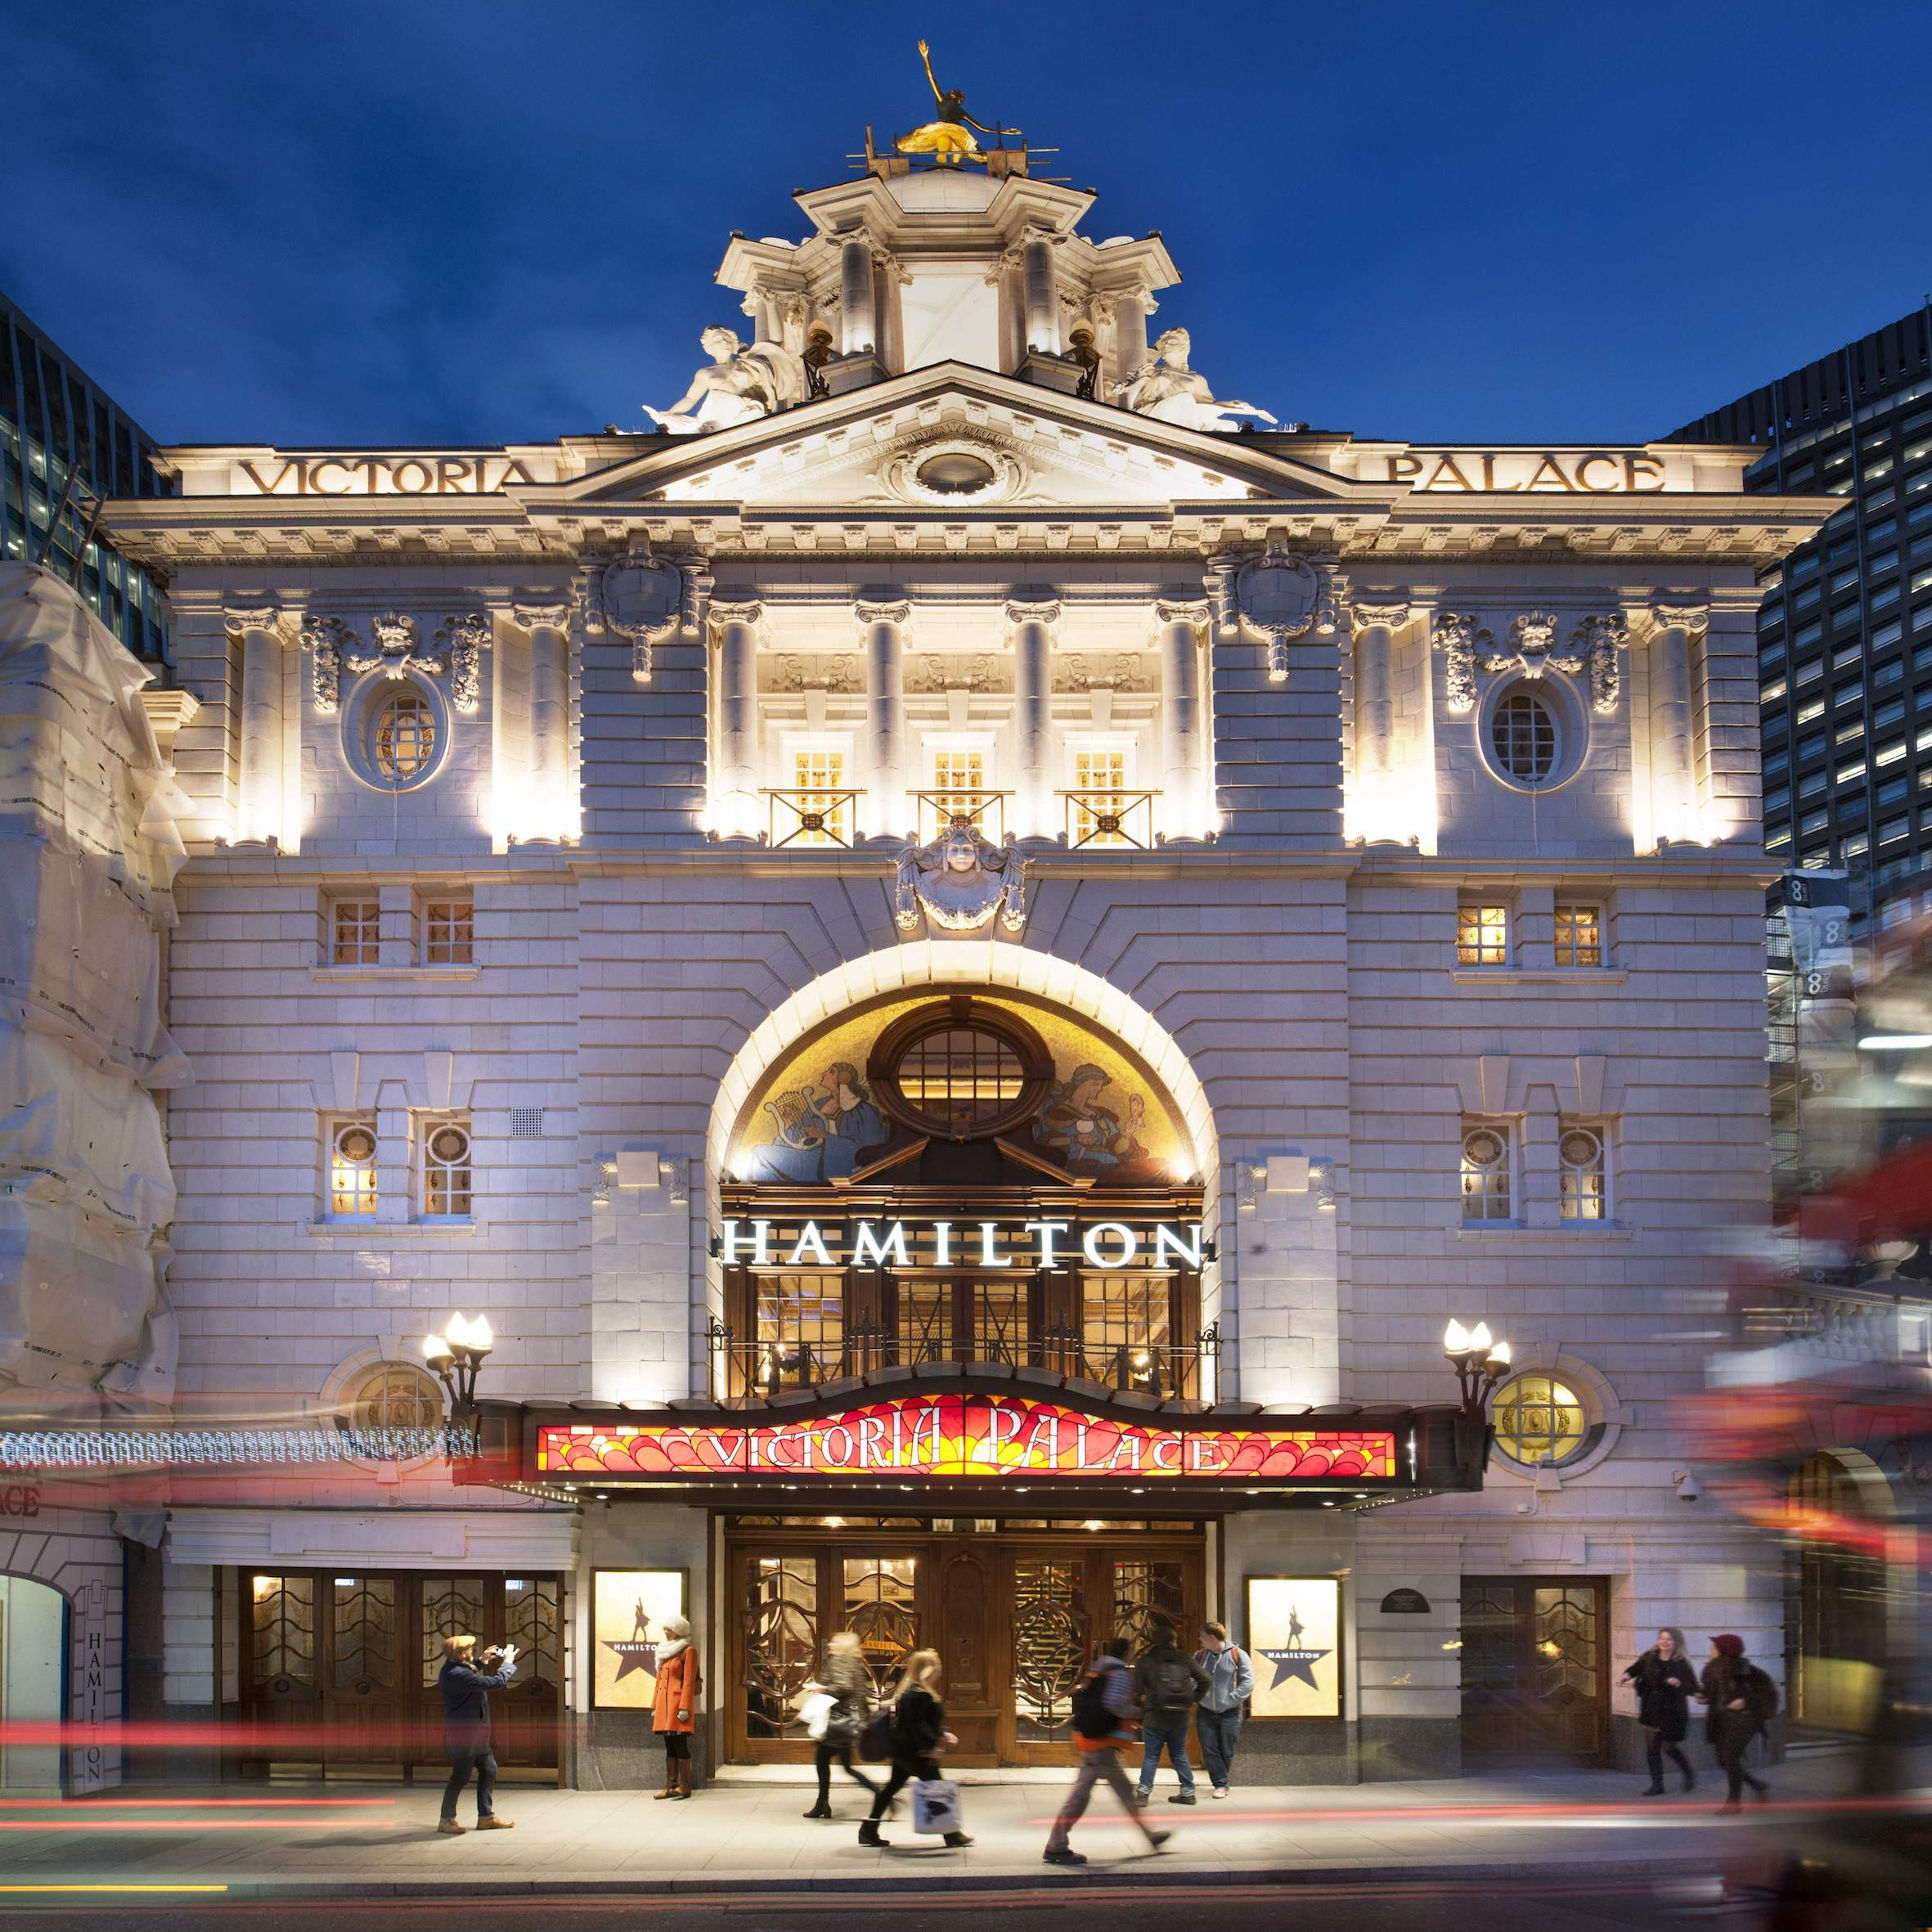 Victoria Palace Theatre London